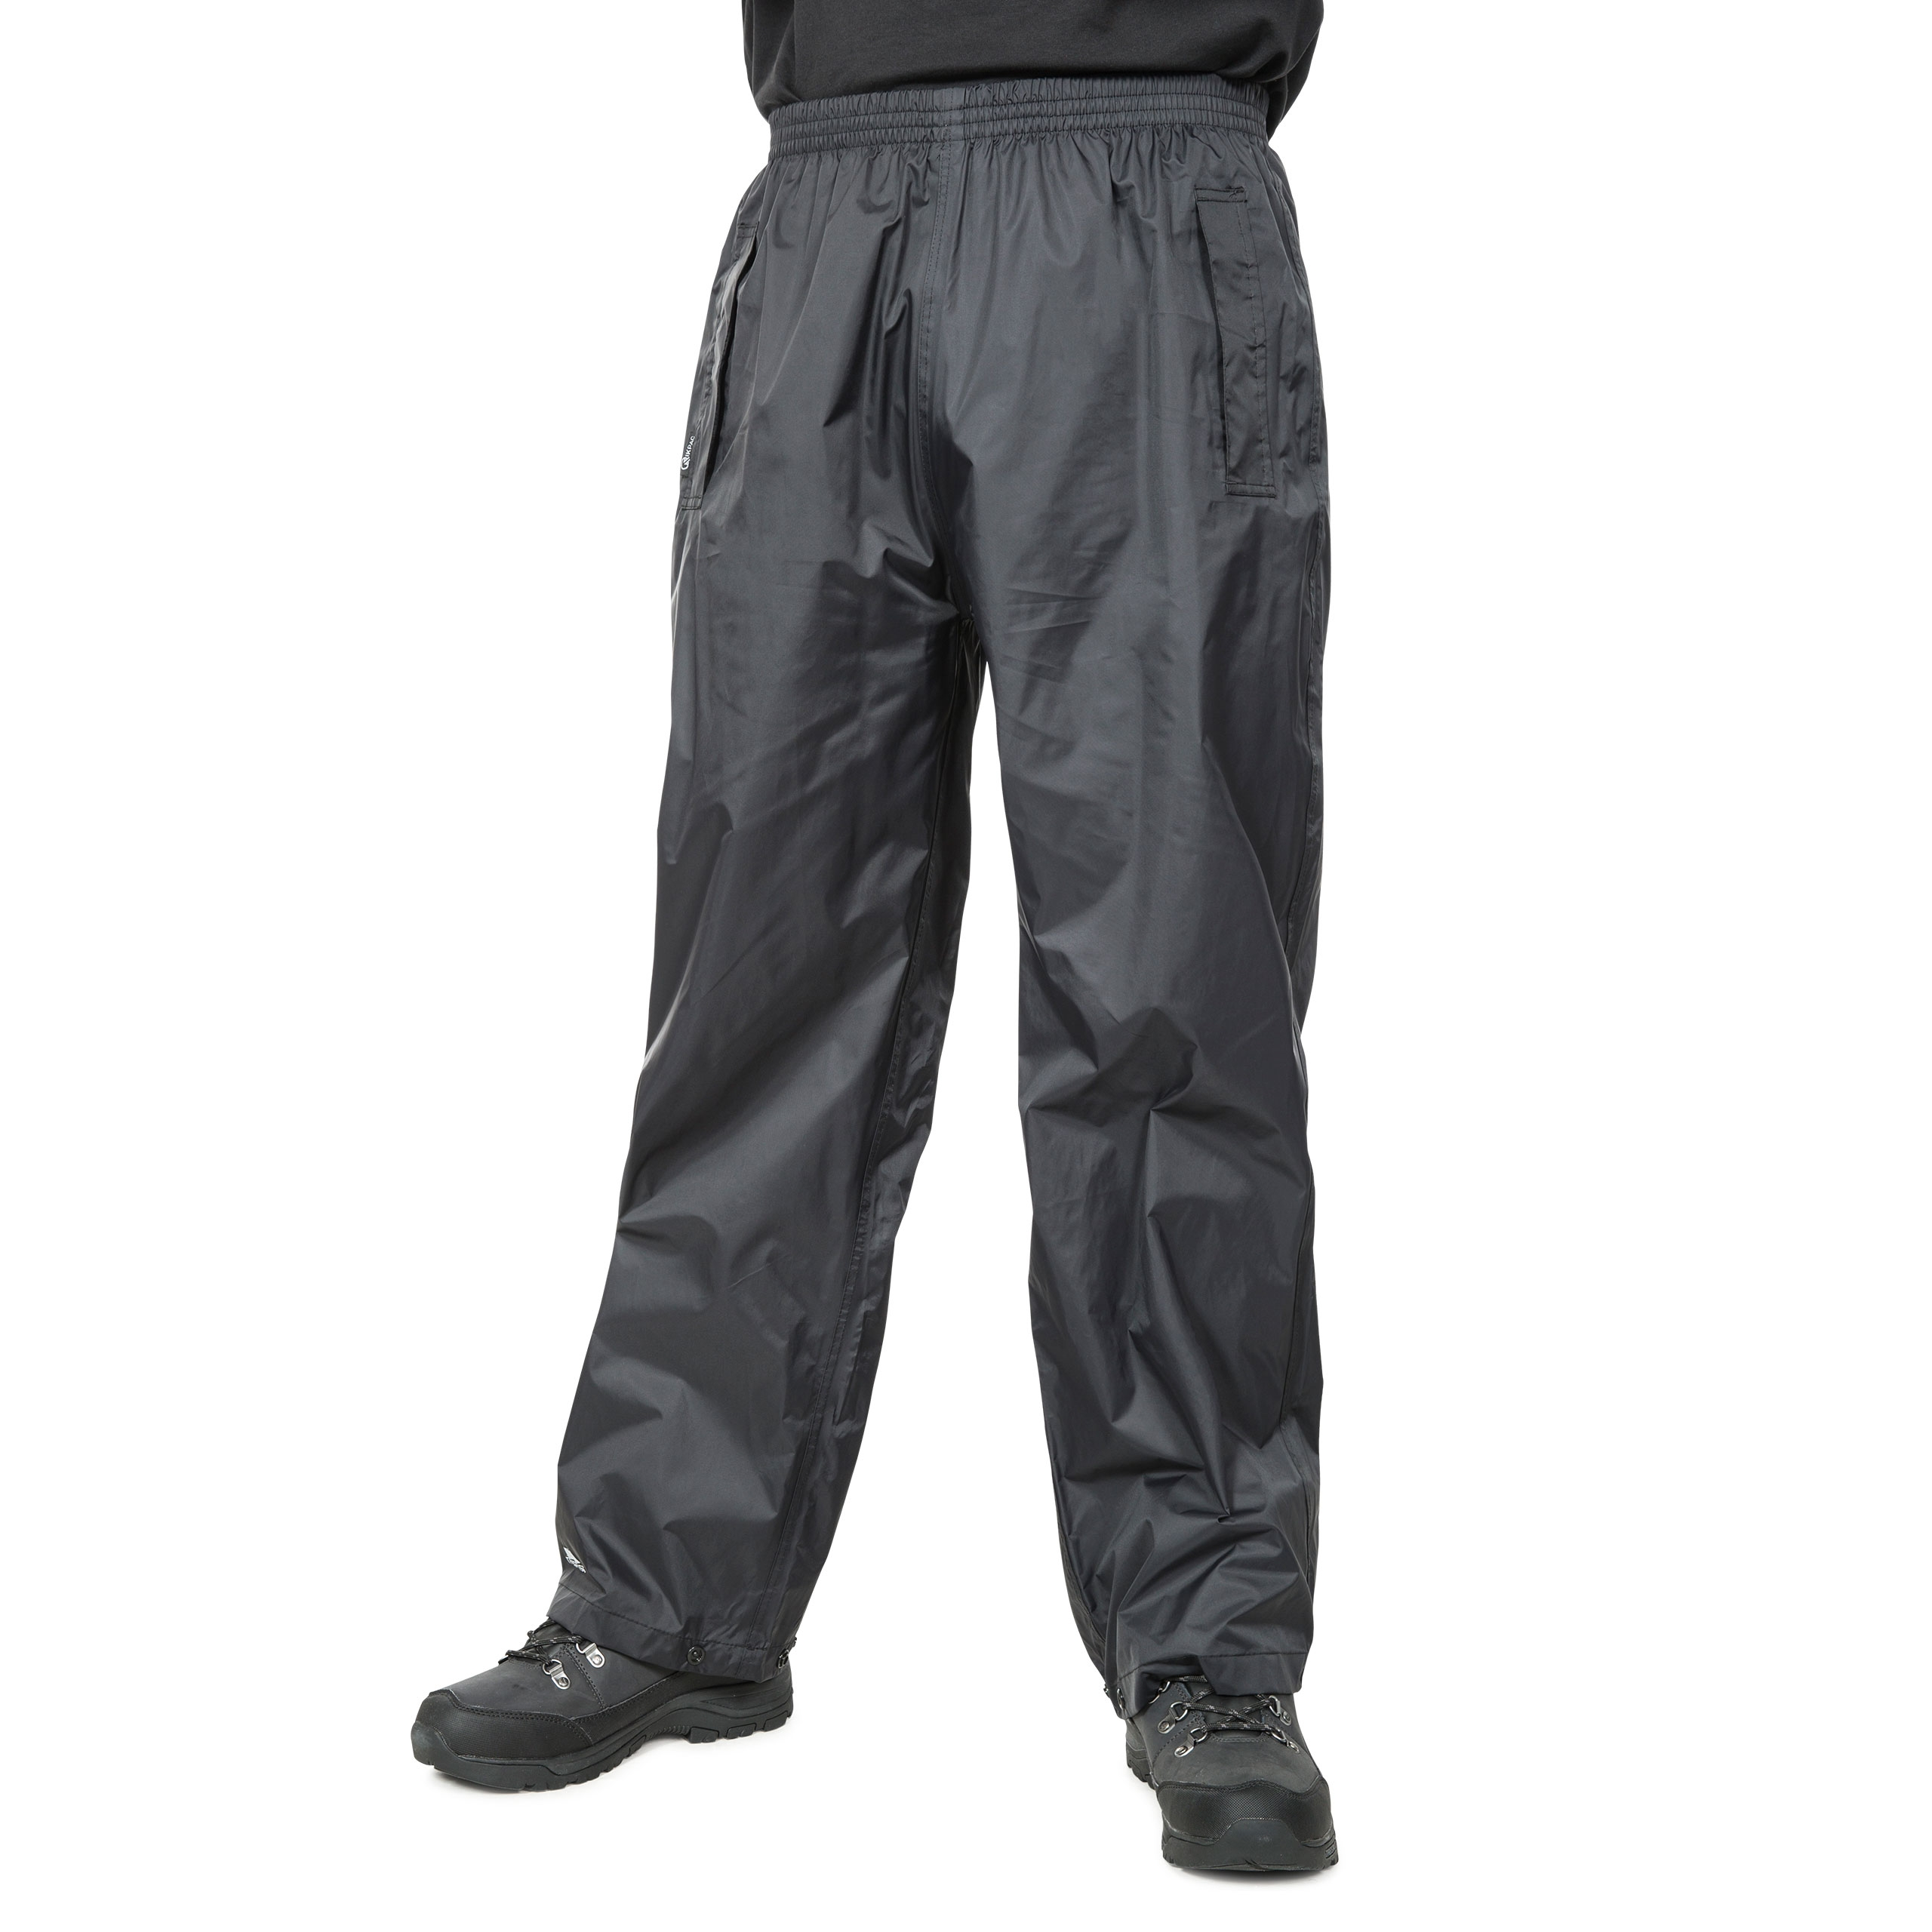 Trespass-Mens-Womens-Waterproof-Trousers-Packaway-Breathable-Qikpac thumbnail 8